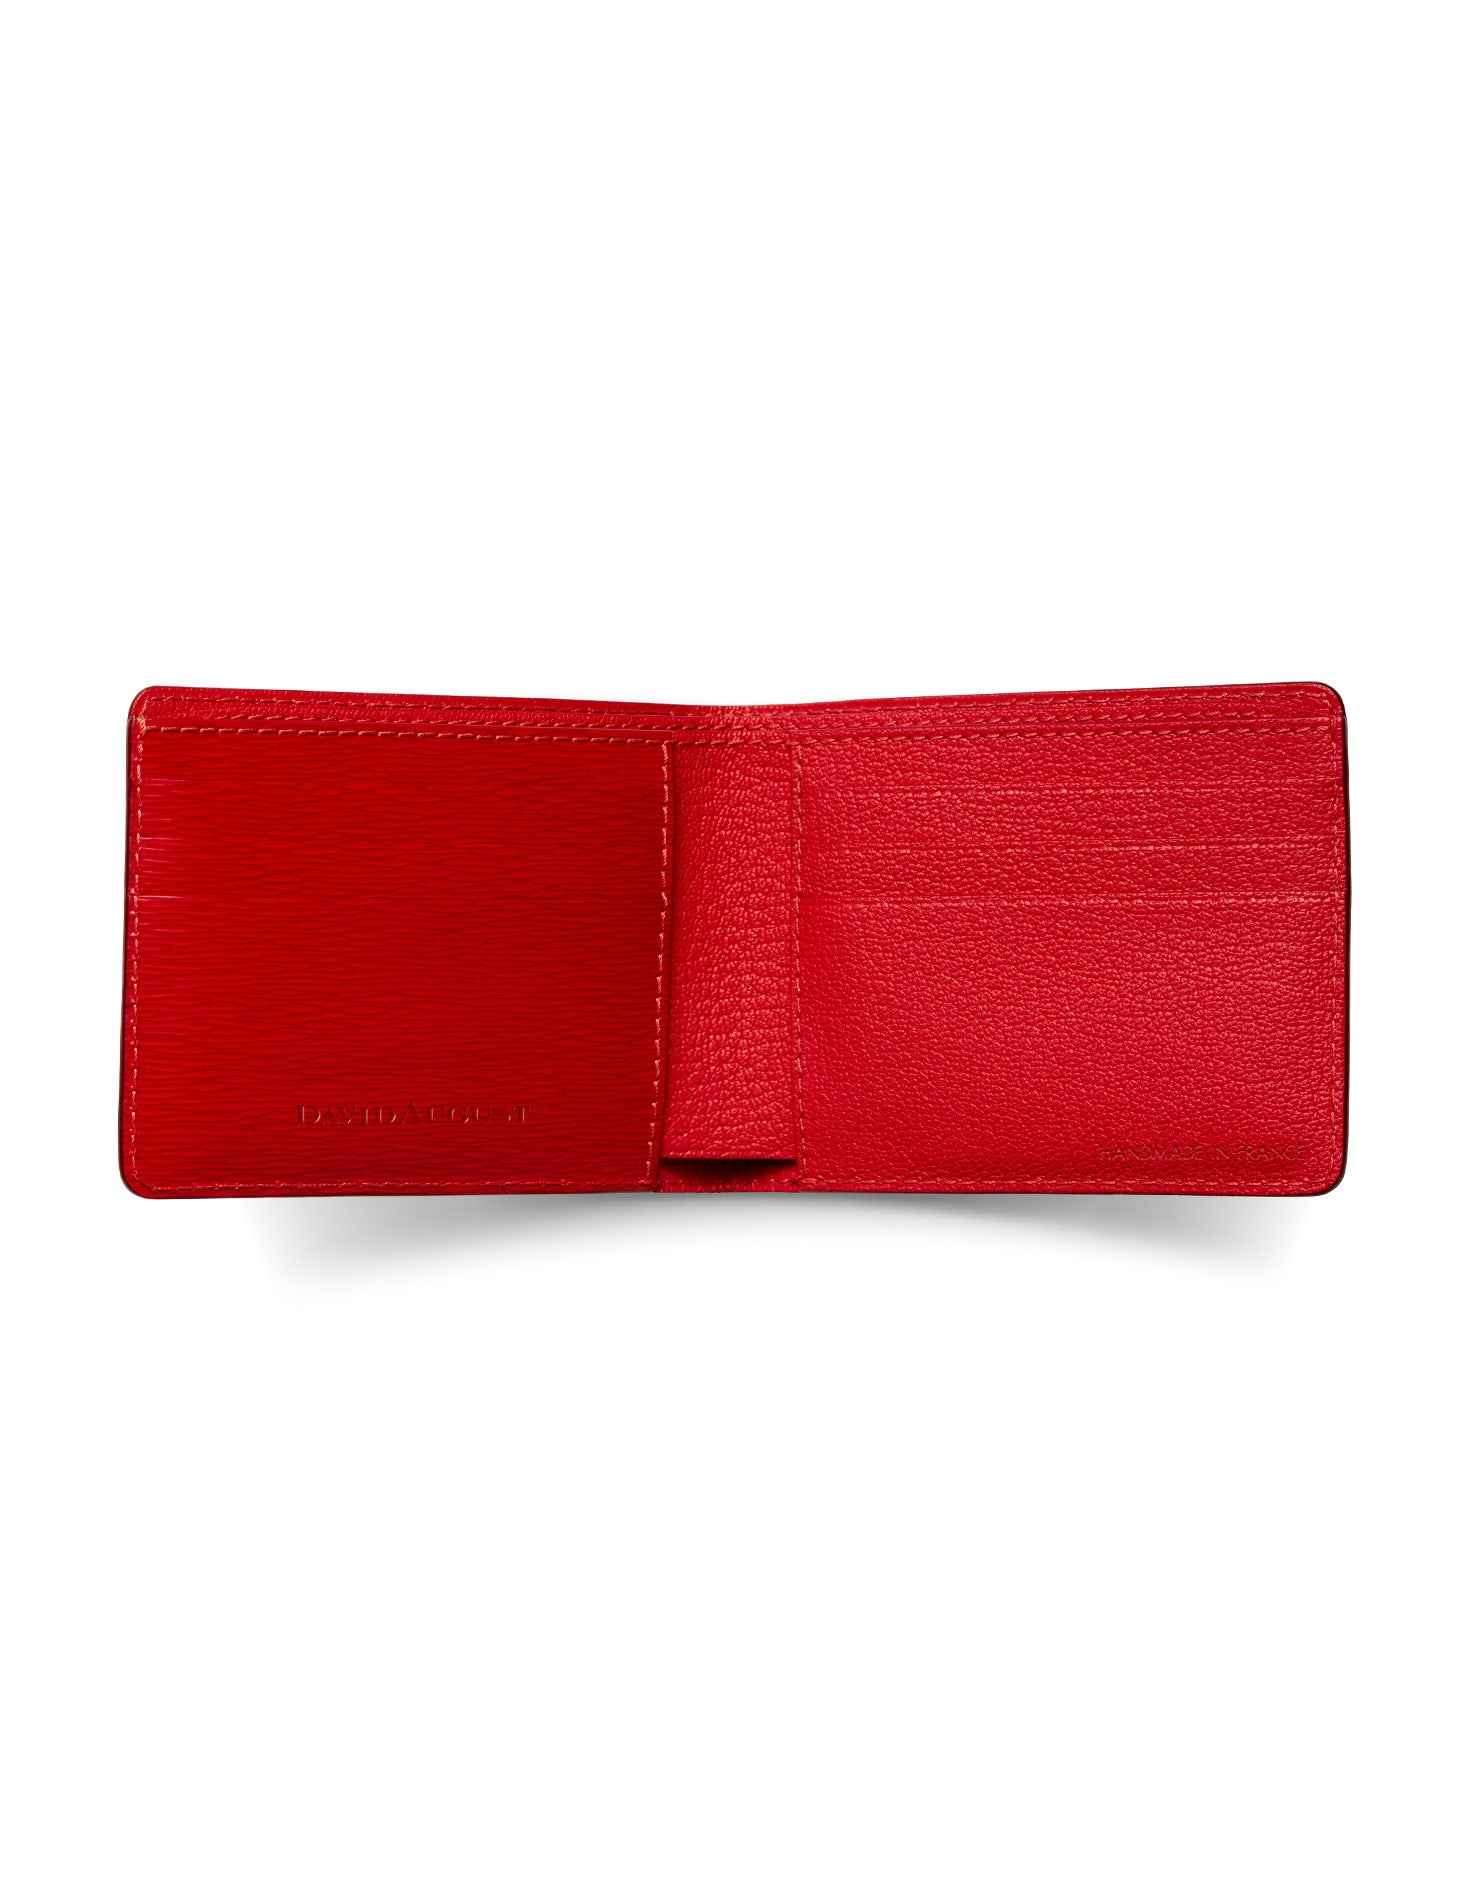 David August Luxury Genuine Epi Leather Bi-Fold Wallet in Red